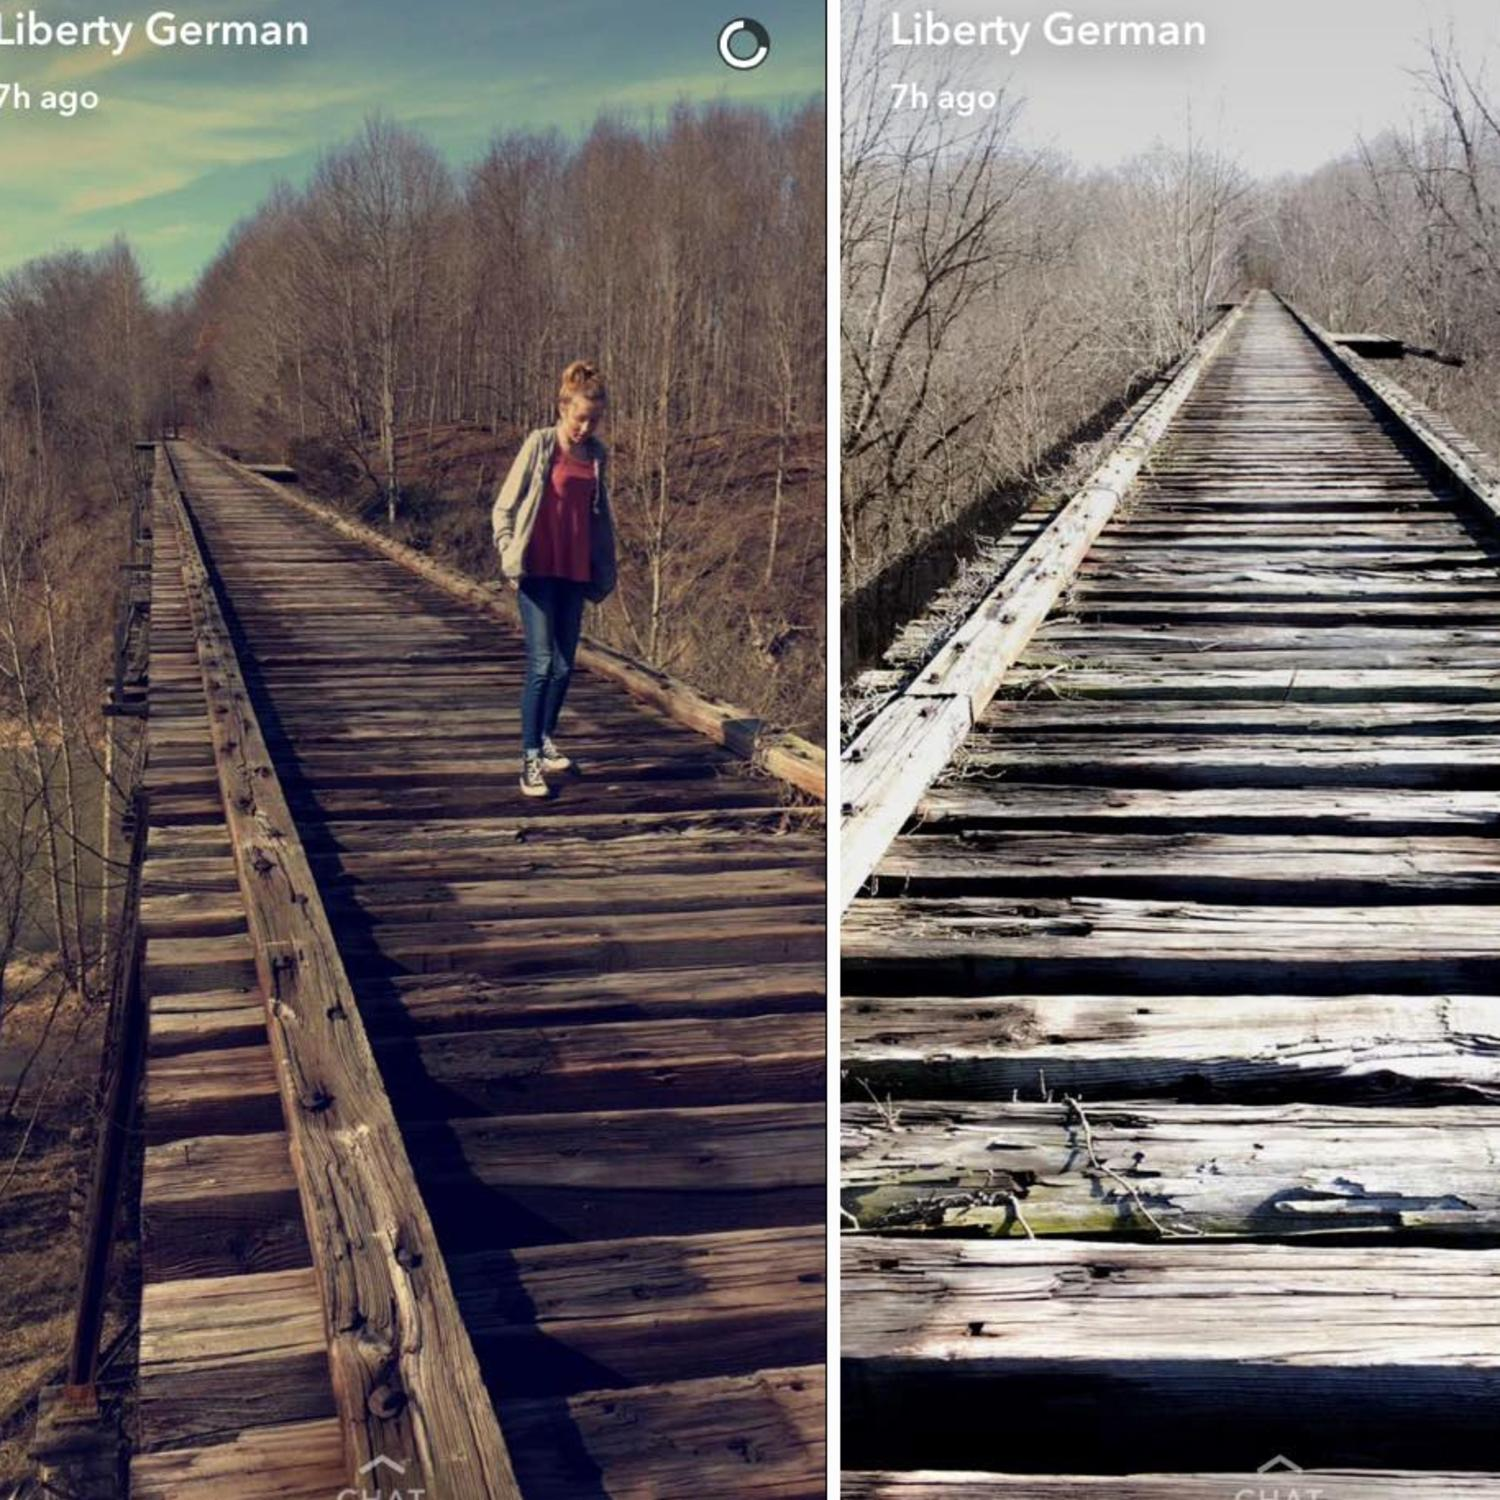 Liberty German's final photo of her best friend Abigail Williams and the bridge before they were abducted and murdered in 2017. Picture: Snapchat.